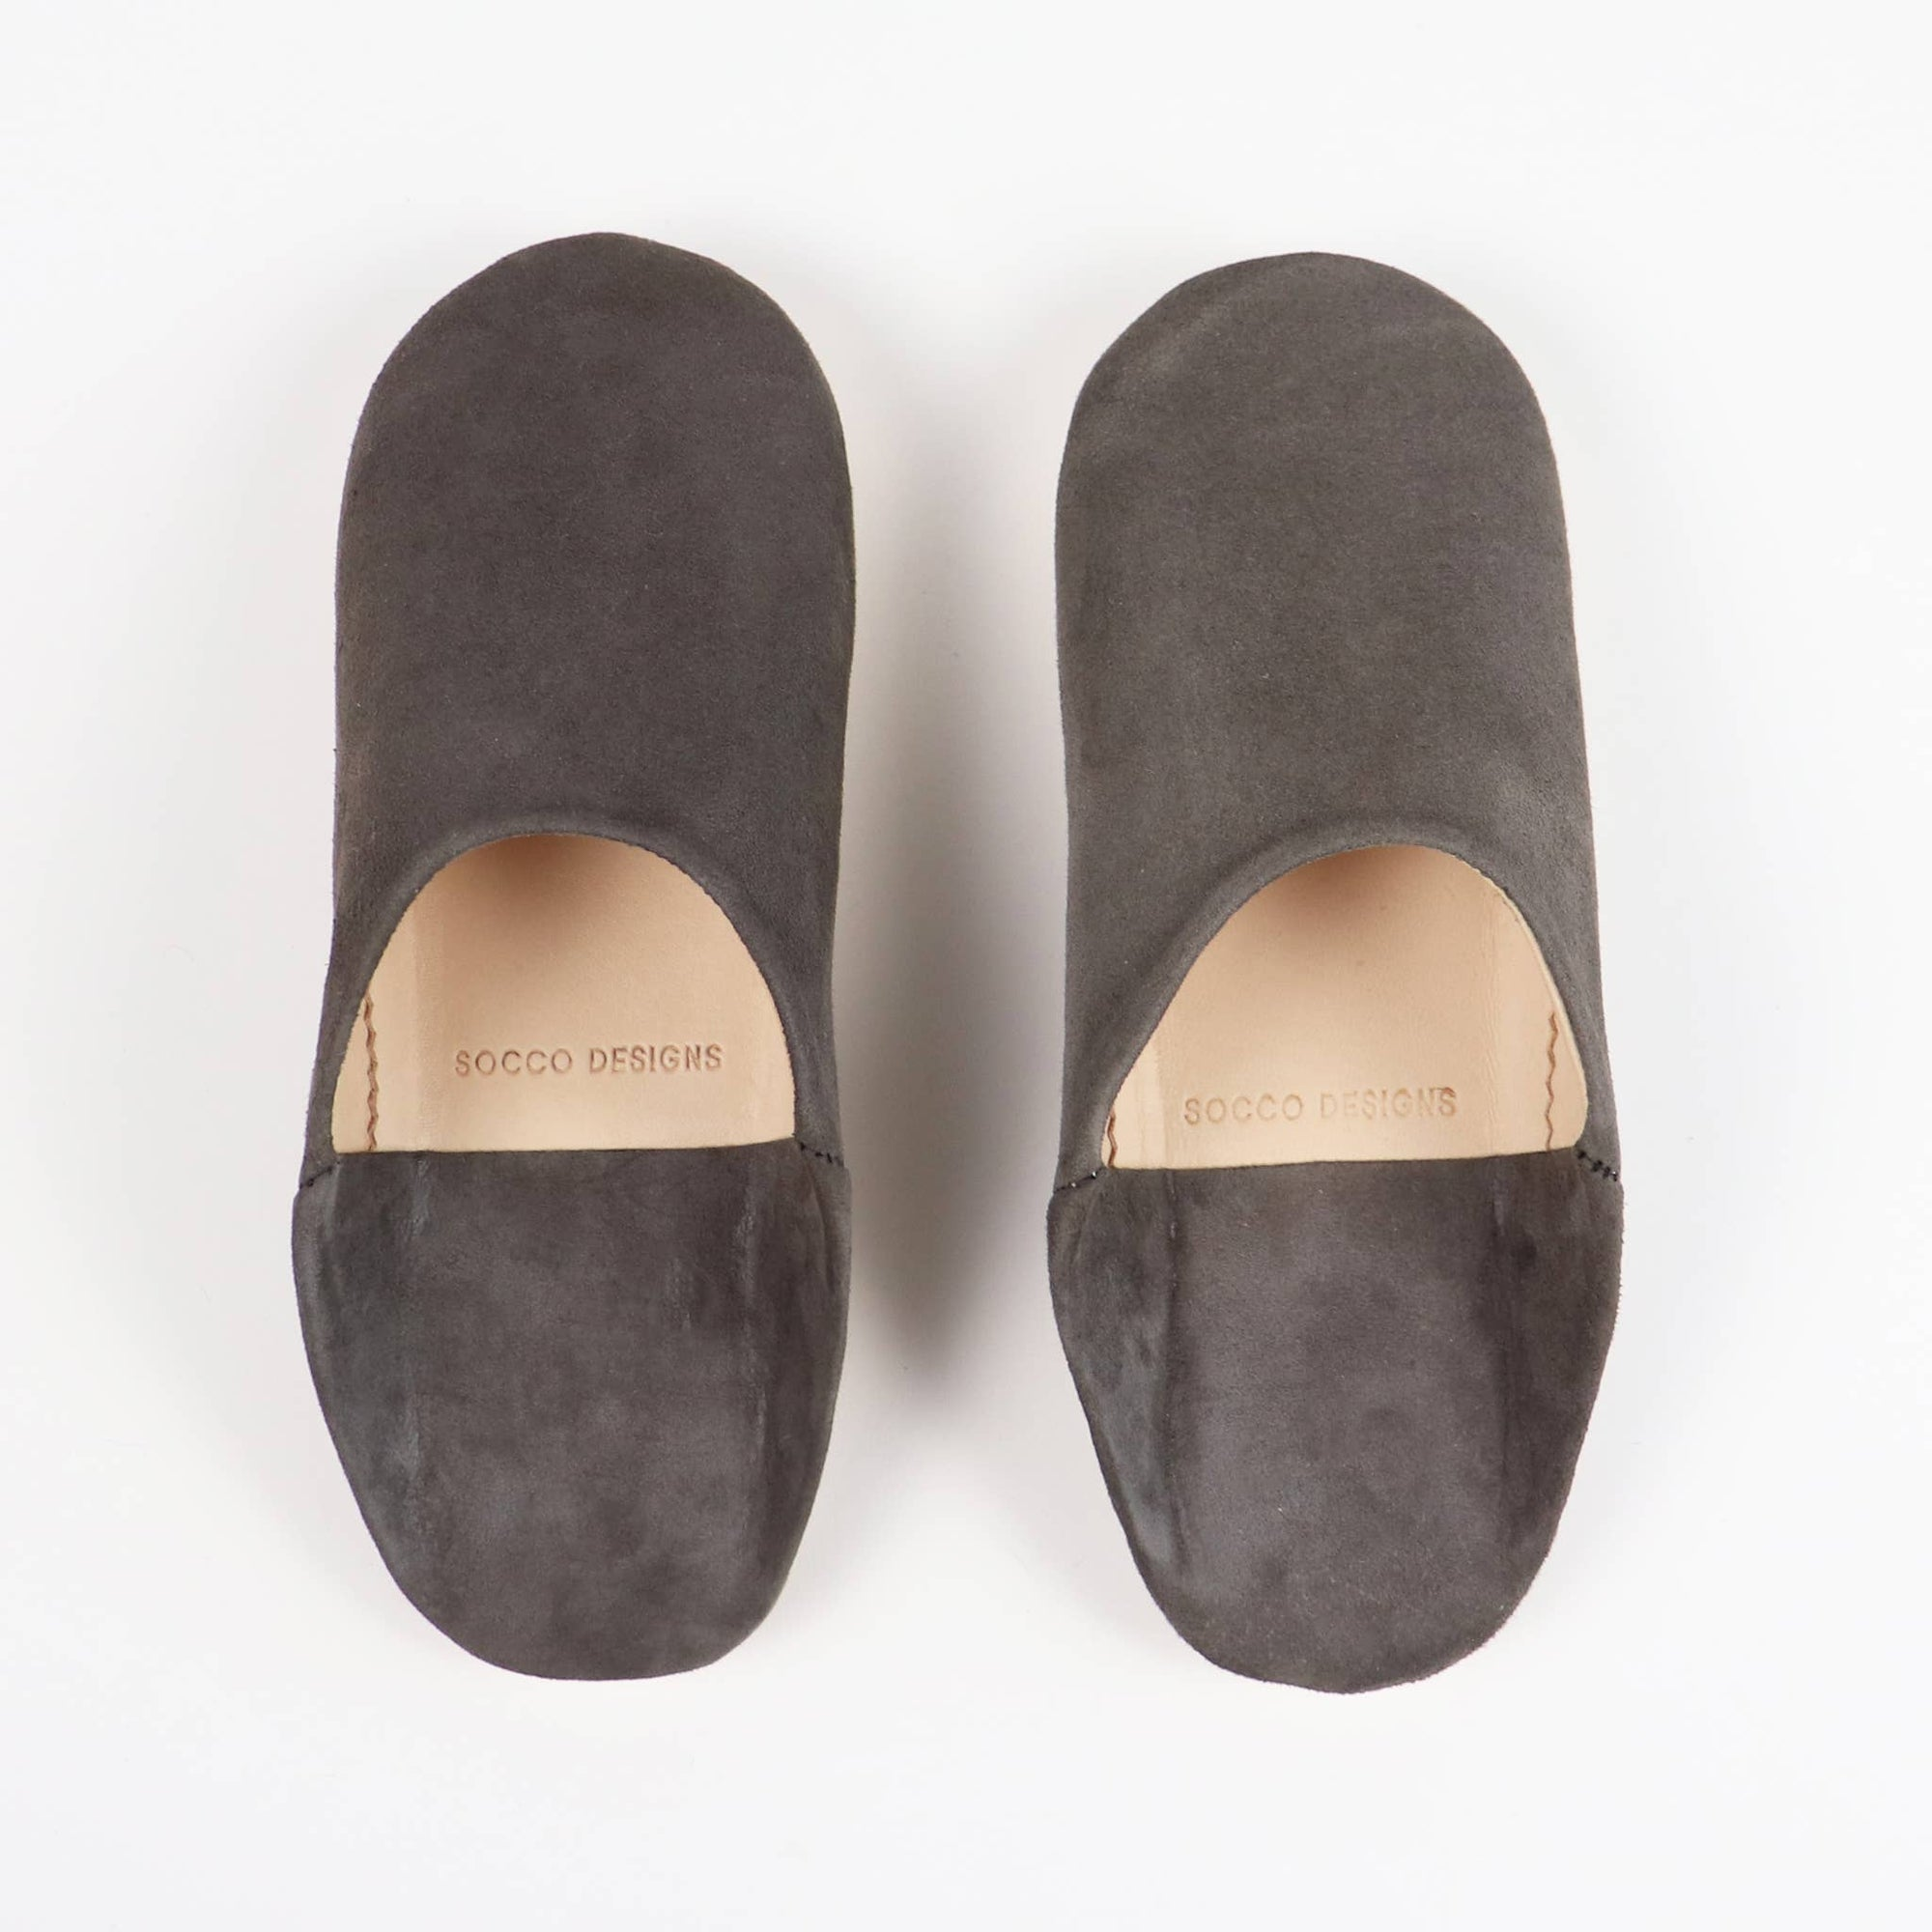 SOCCO Women's Moroccan Suede Babouche Slippers in Charcoal